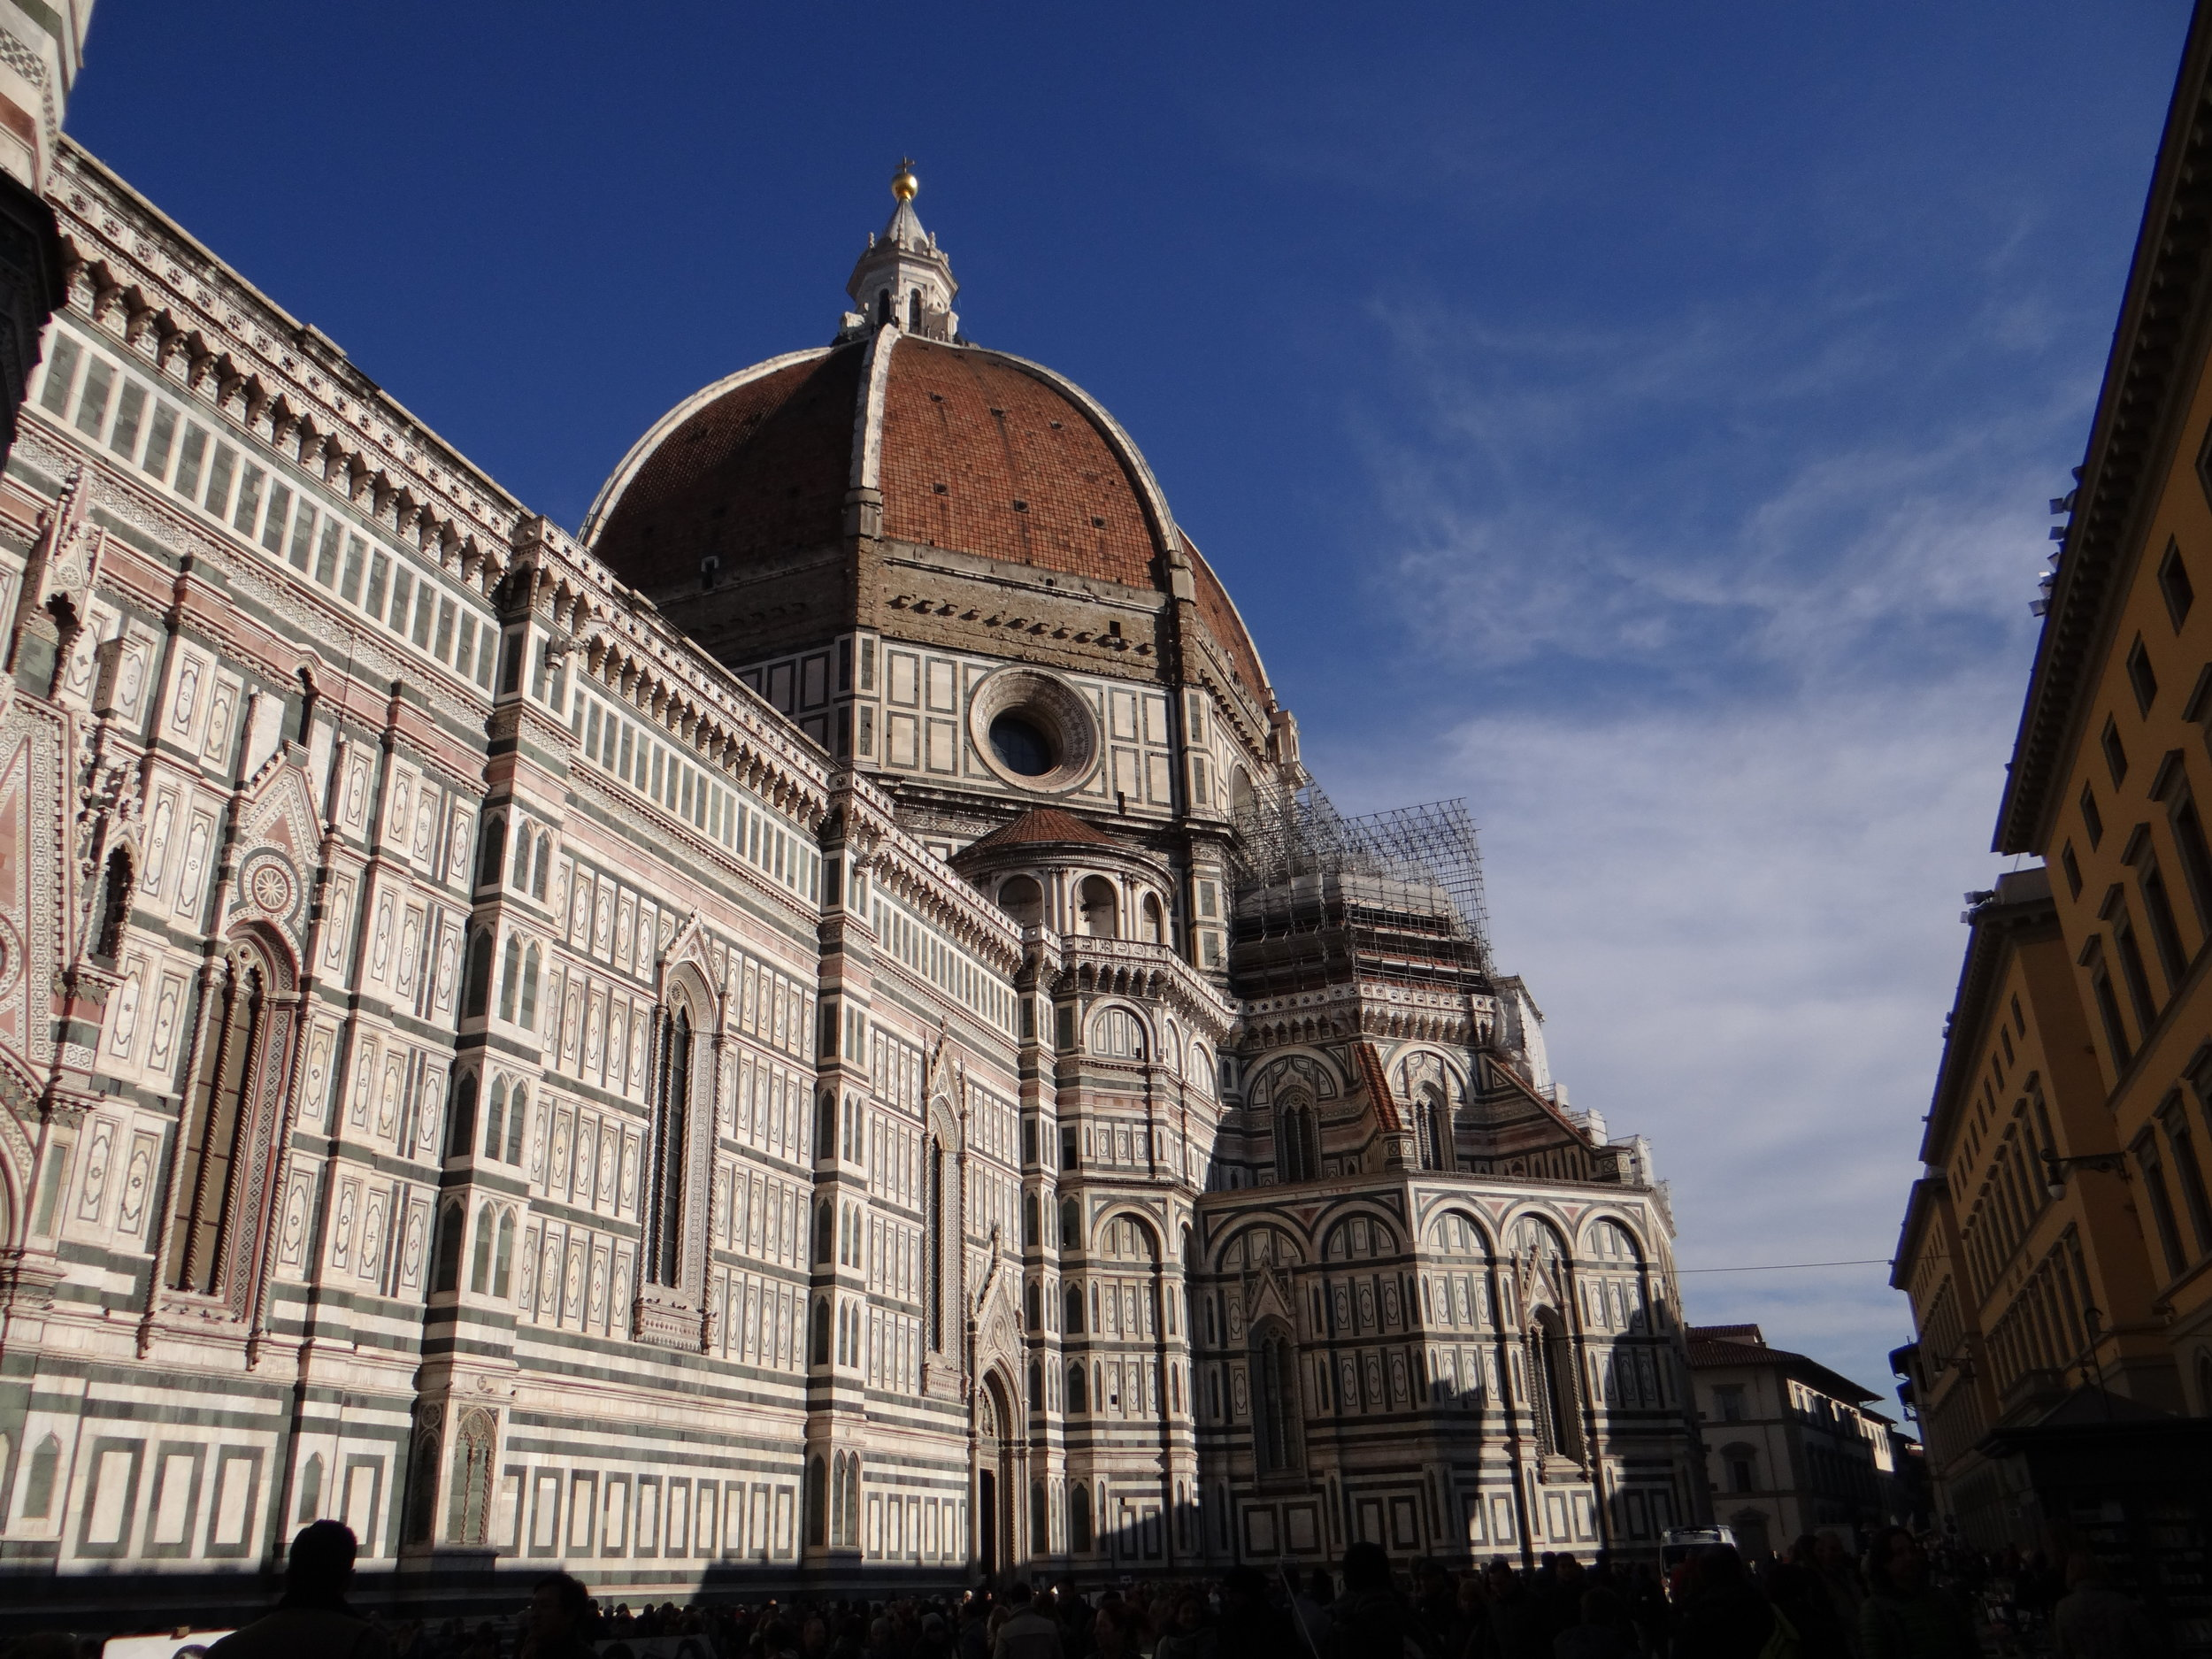 The famous Duomo in Florence, Italy.